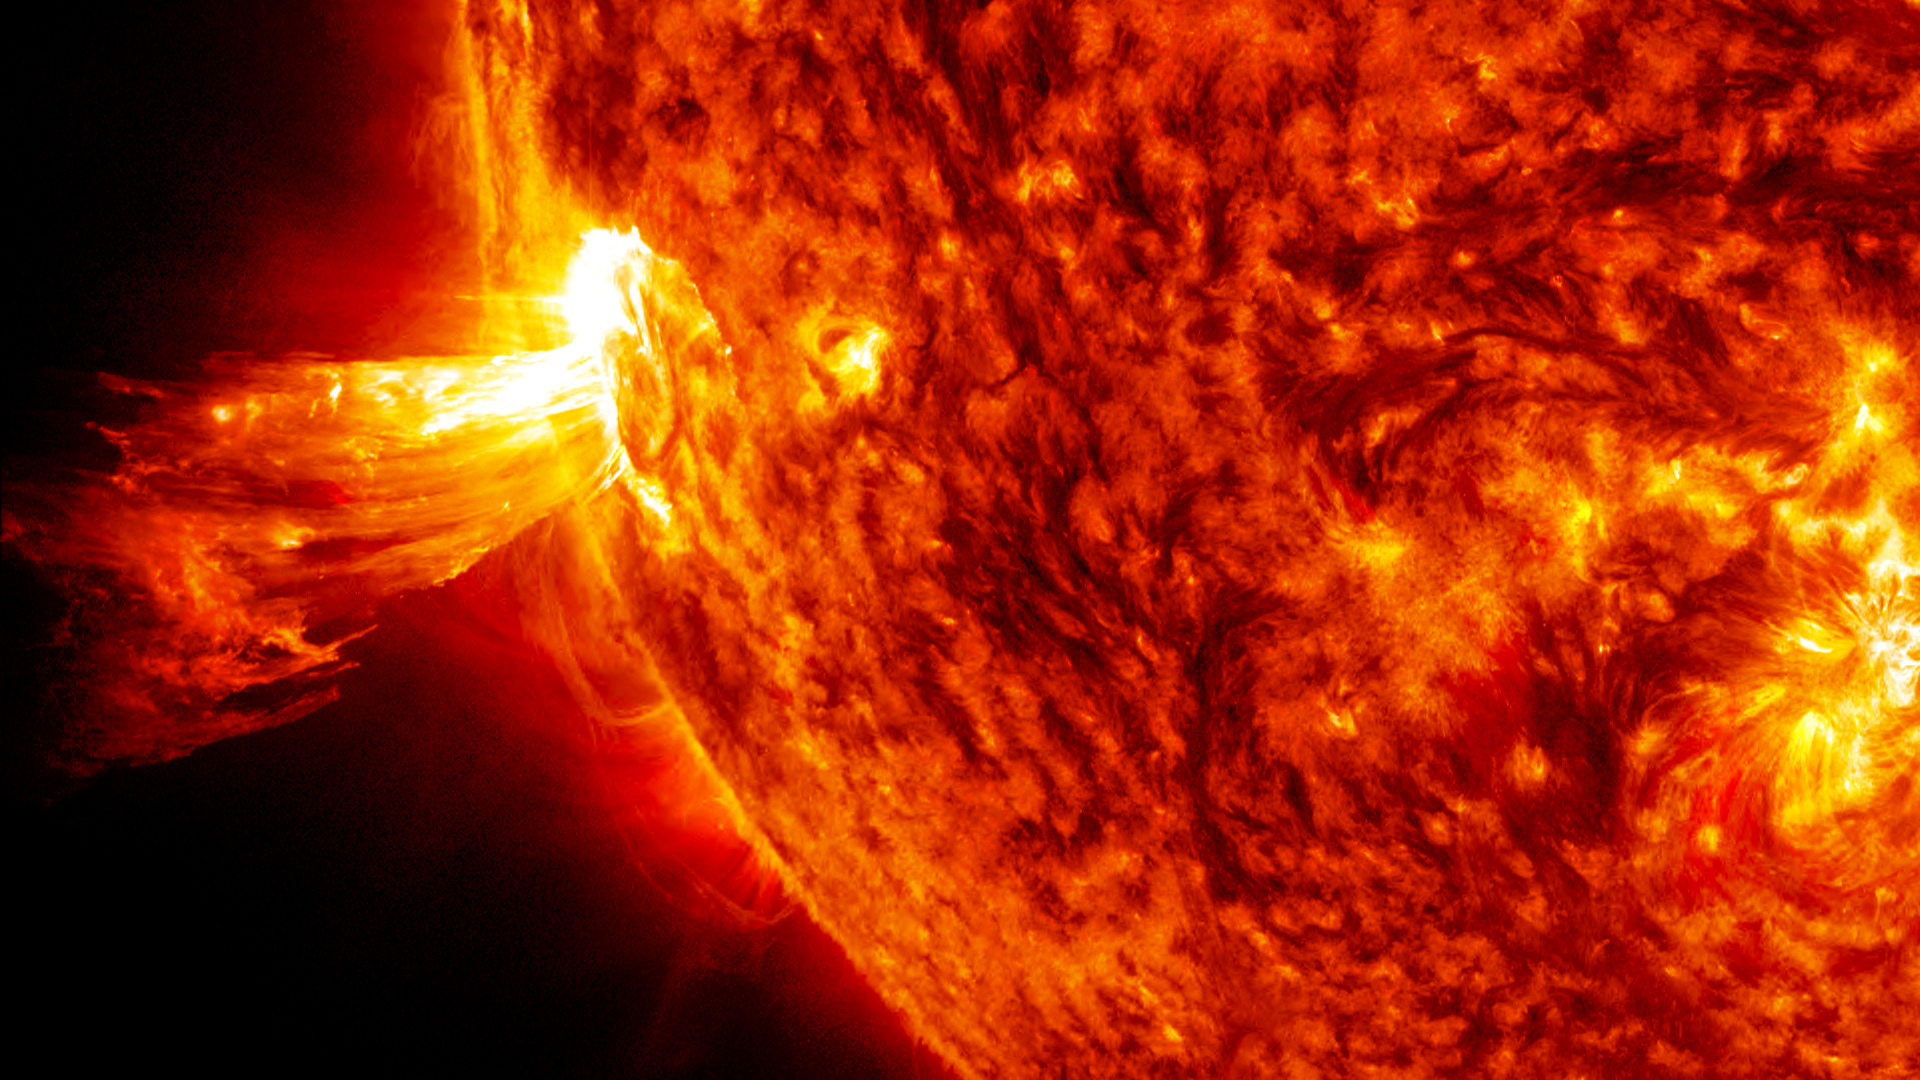 On June 20, 2013, NASA's Solar Dynamics Observatory spacecraft captured this coronal mass ejection (CME). A solar phenomenon that can send billions of tons of particles into space that can reach Earth one to three days later. Credit NASA.